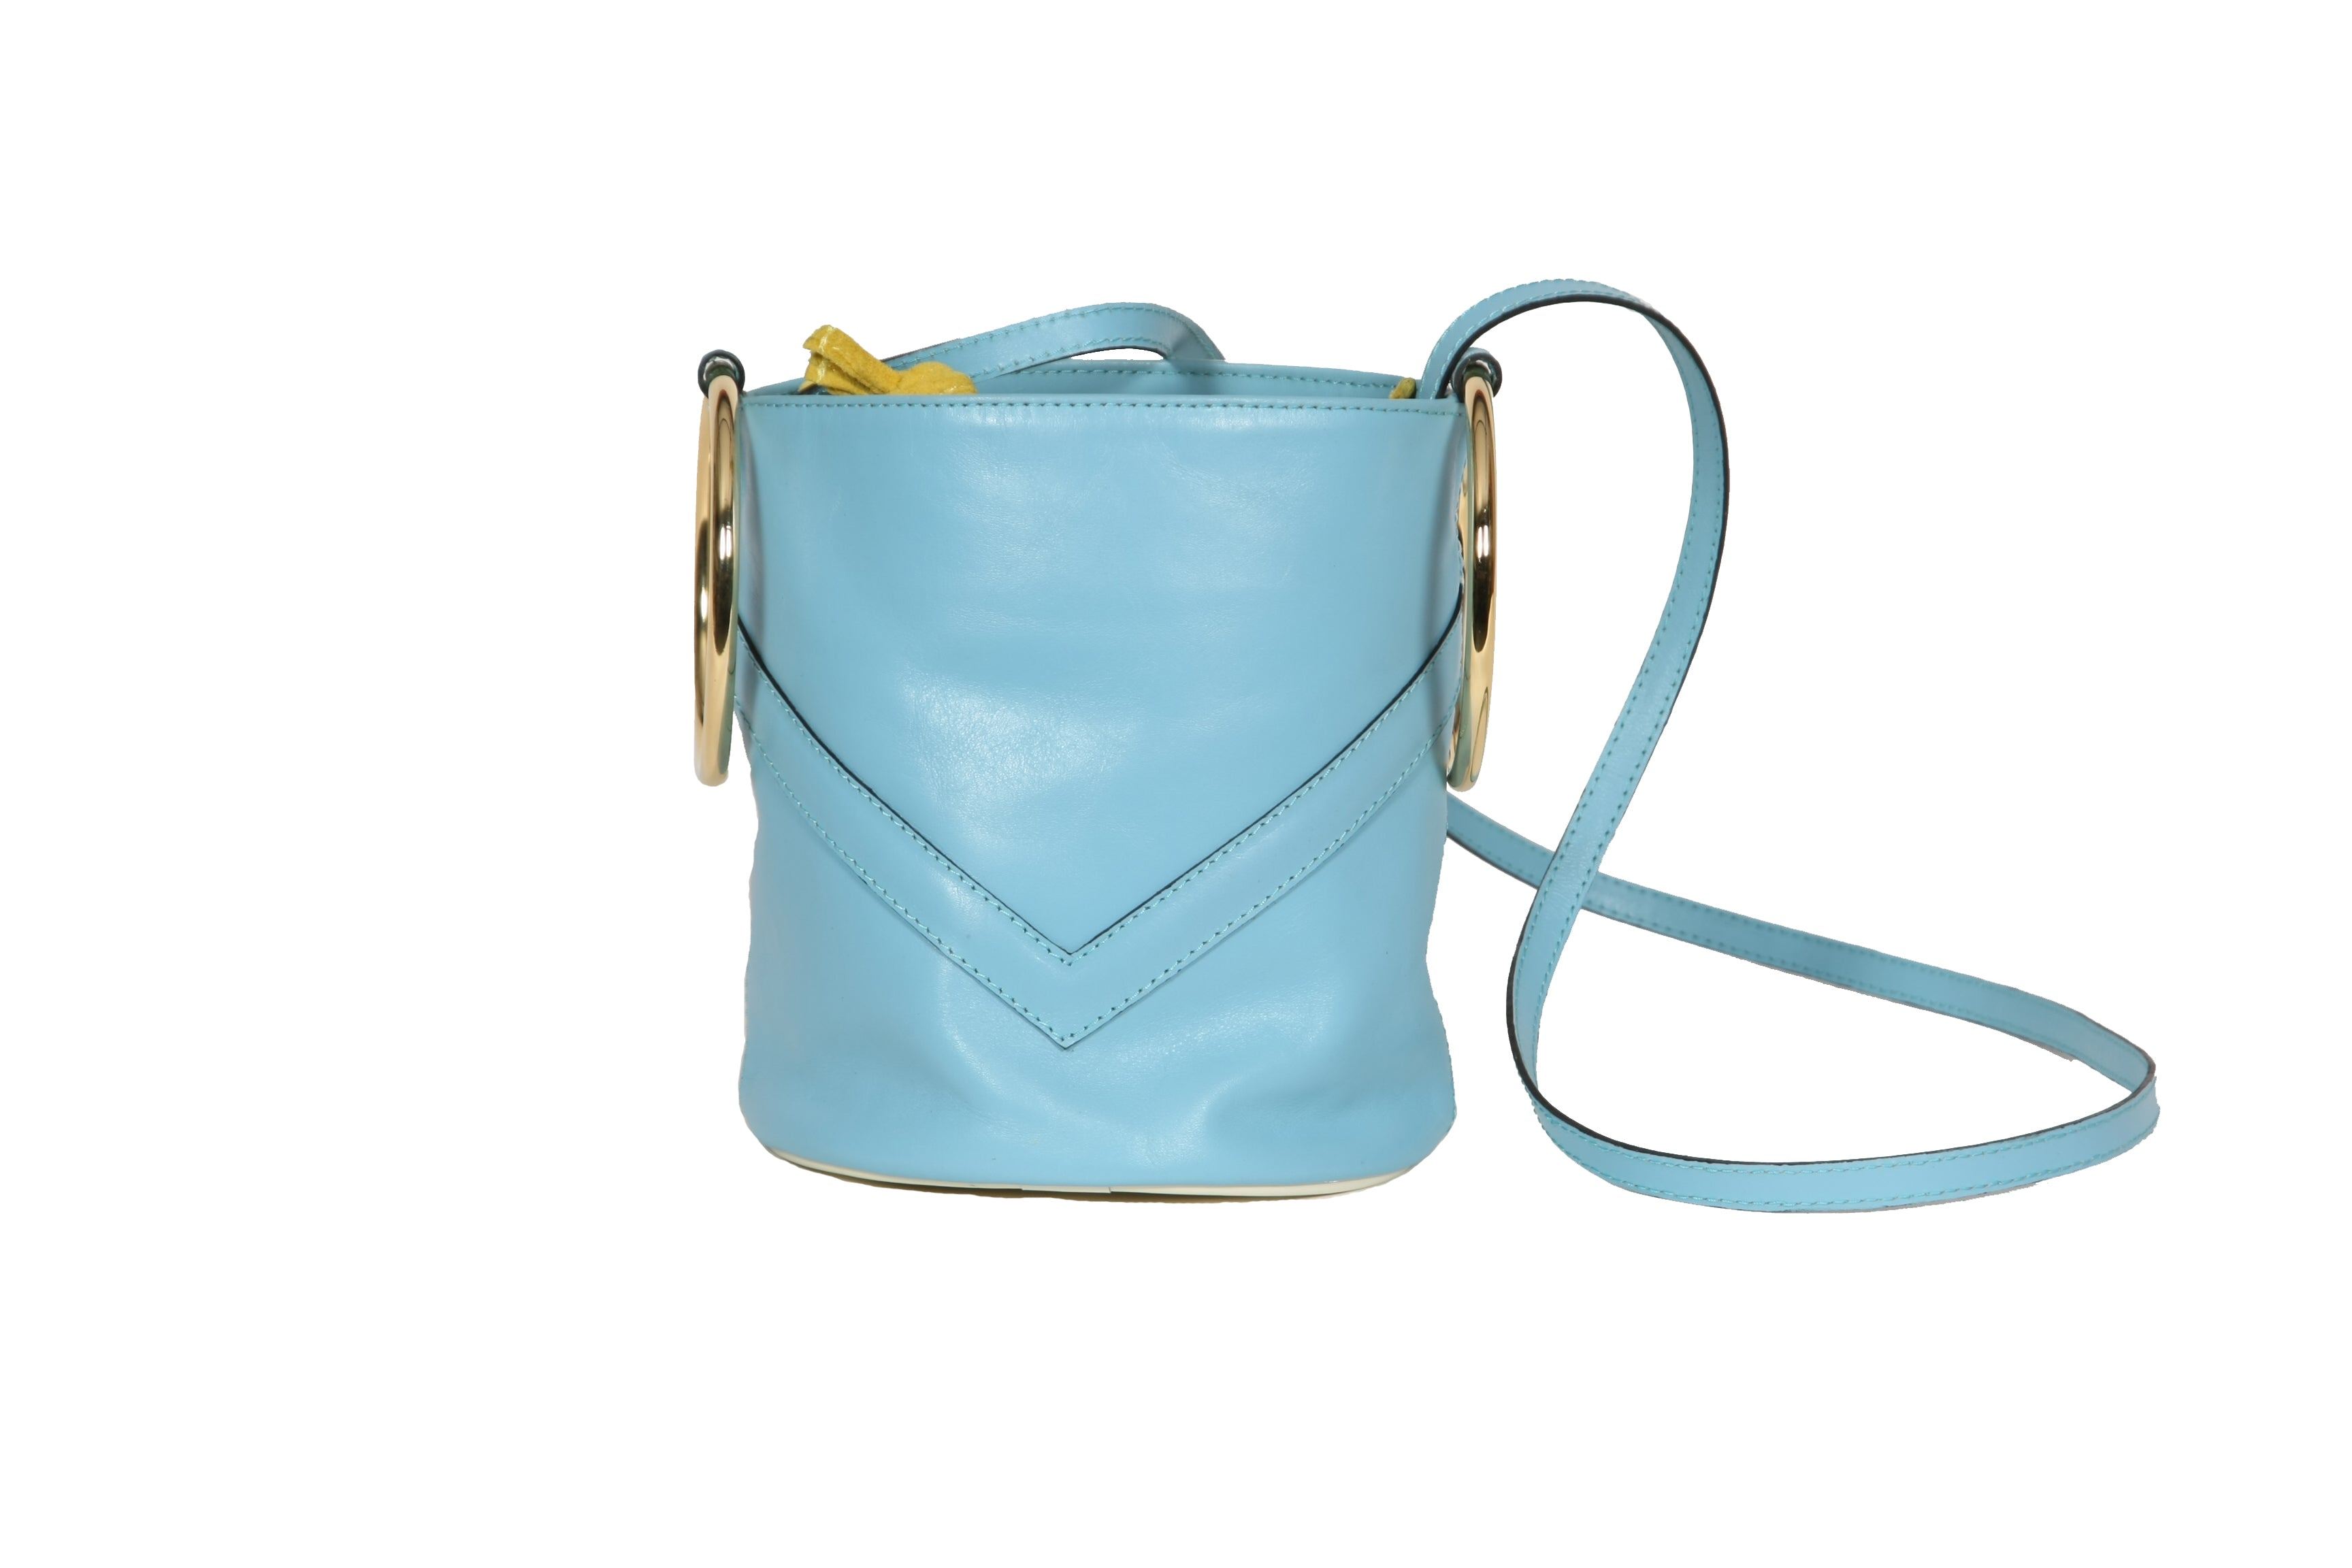 s.s ' 19 - Blue Mini Bucket